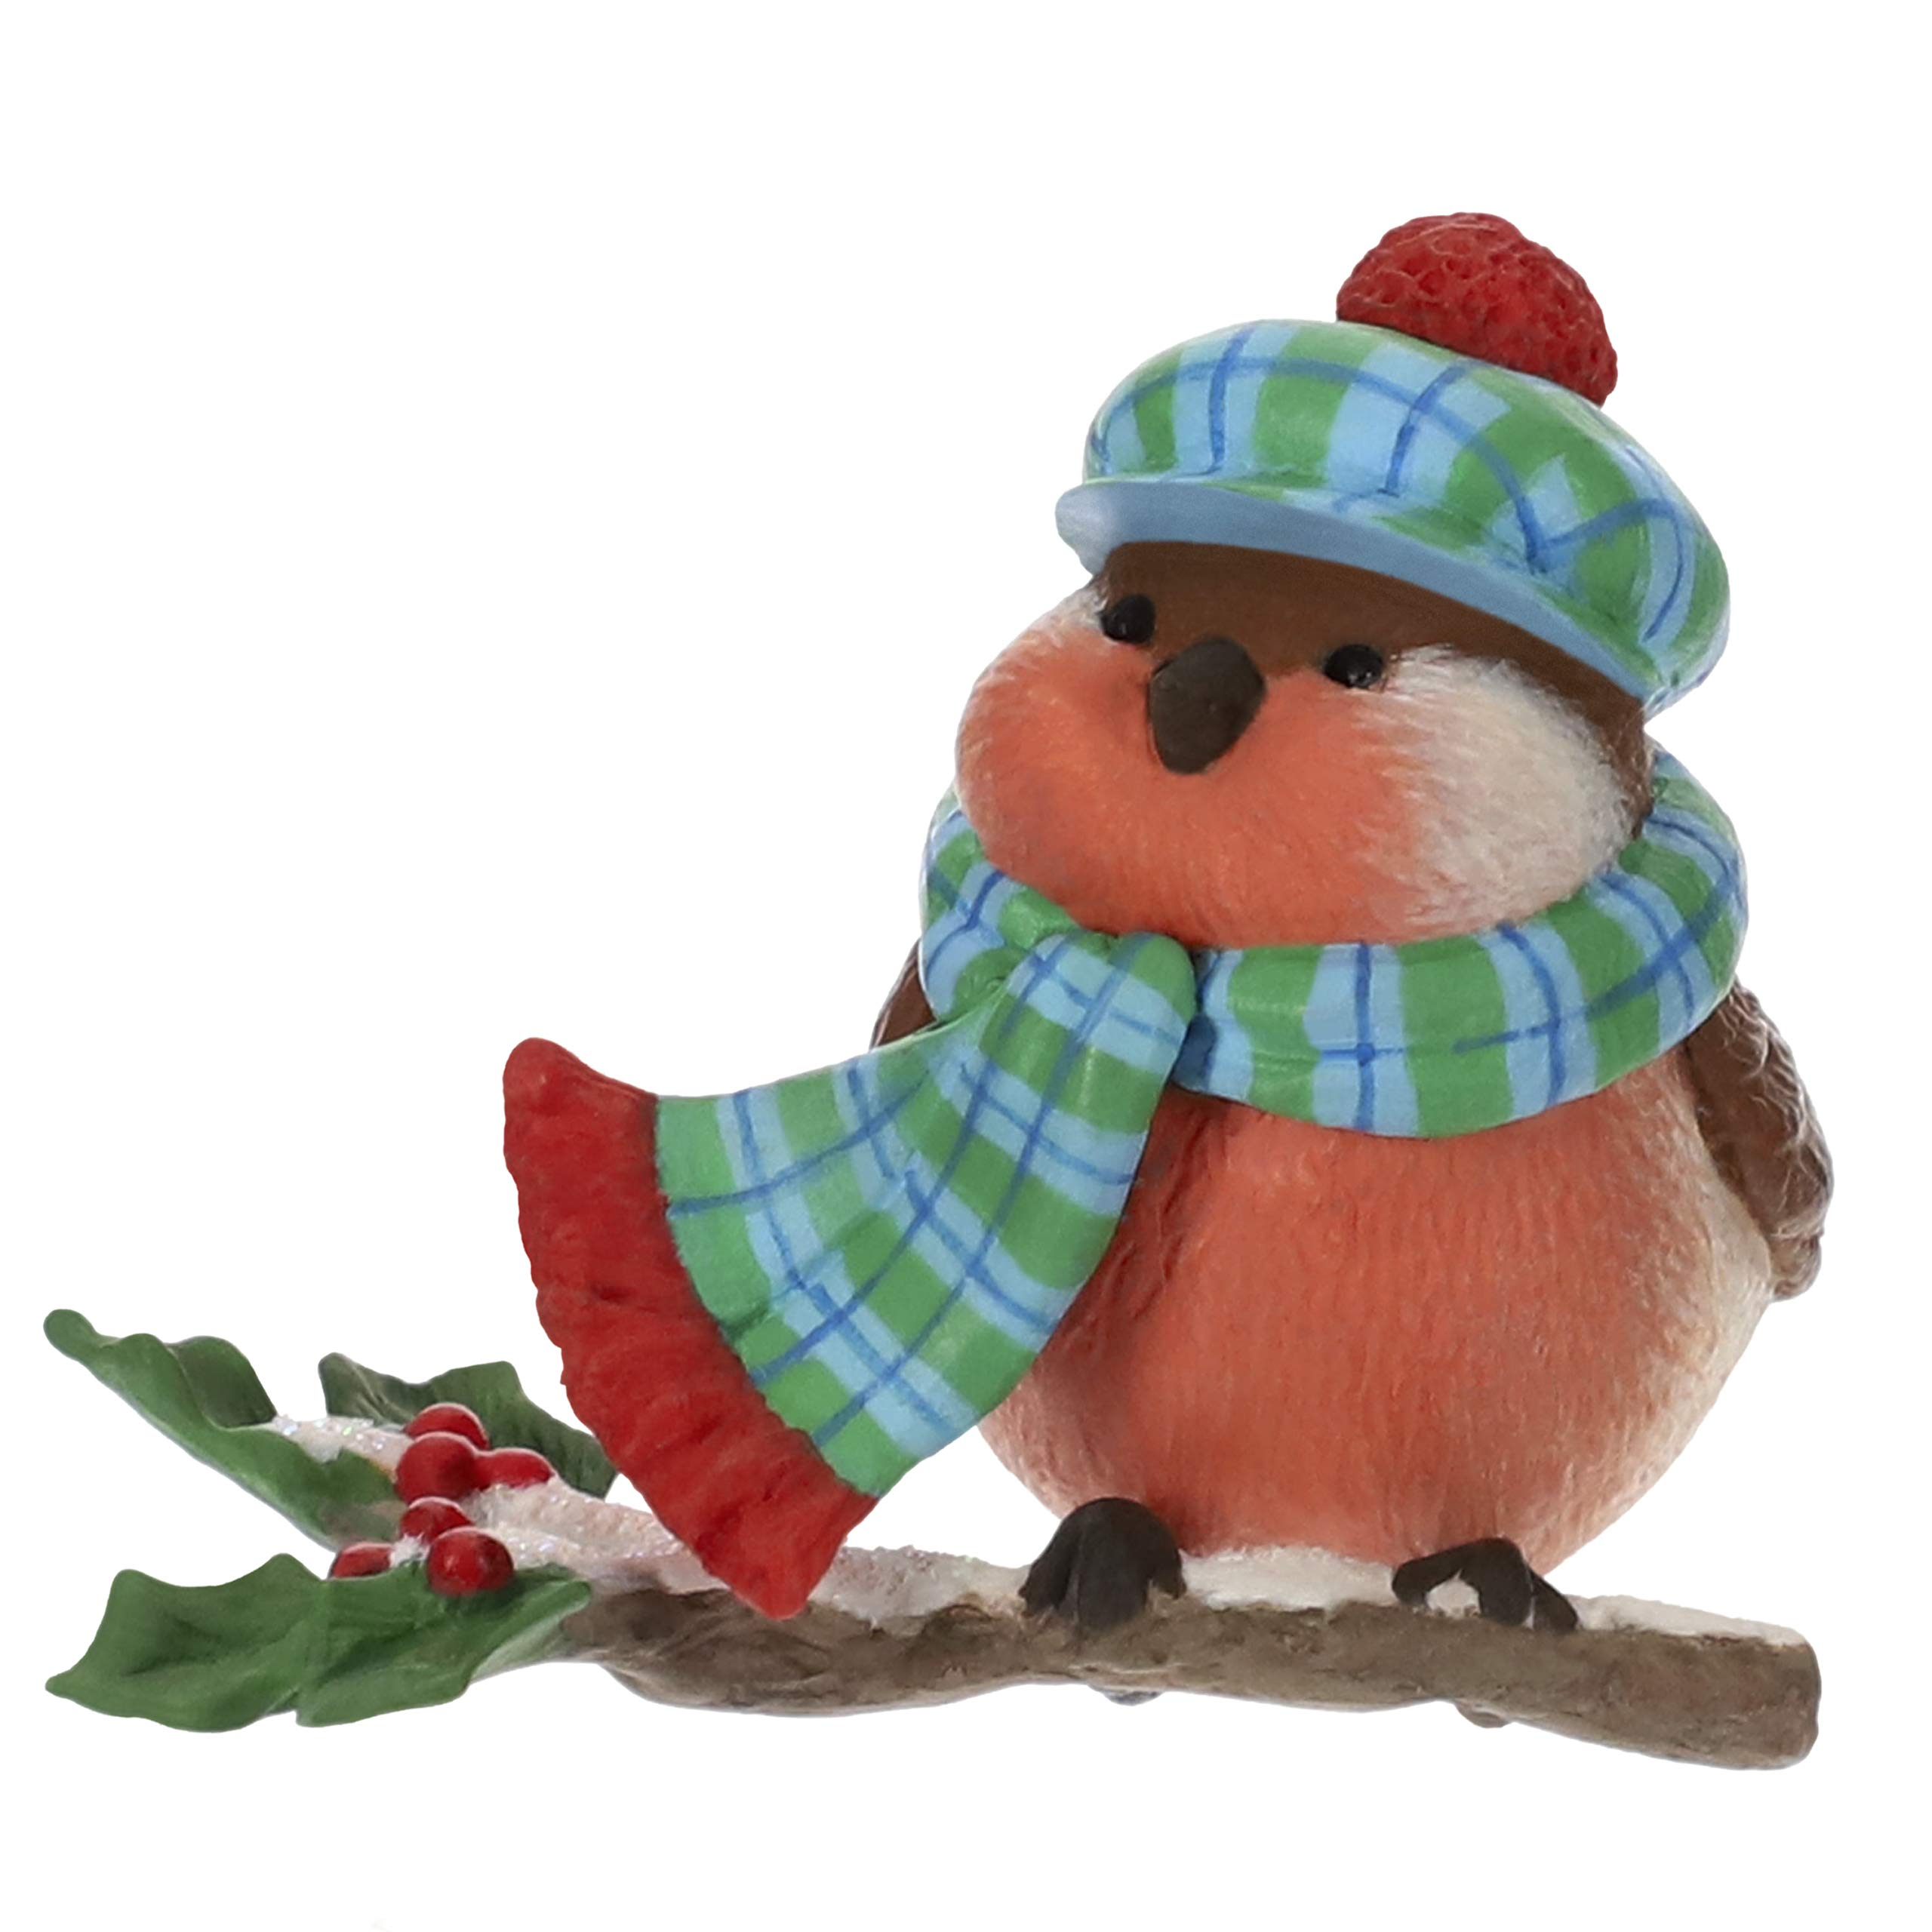 Image of Hallmark Cozy Critters Bird Christmas Ornament